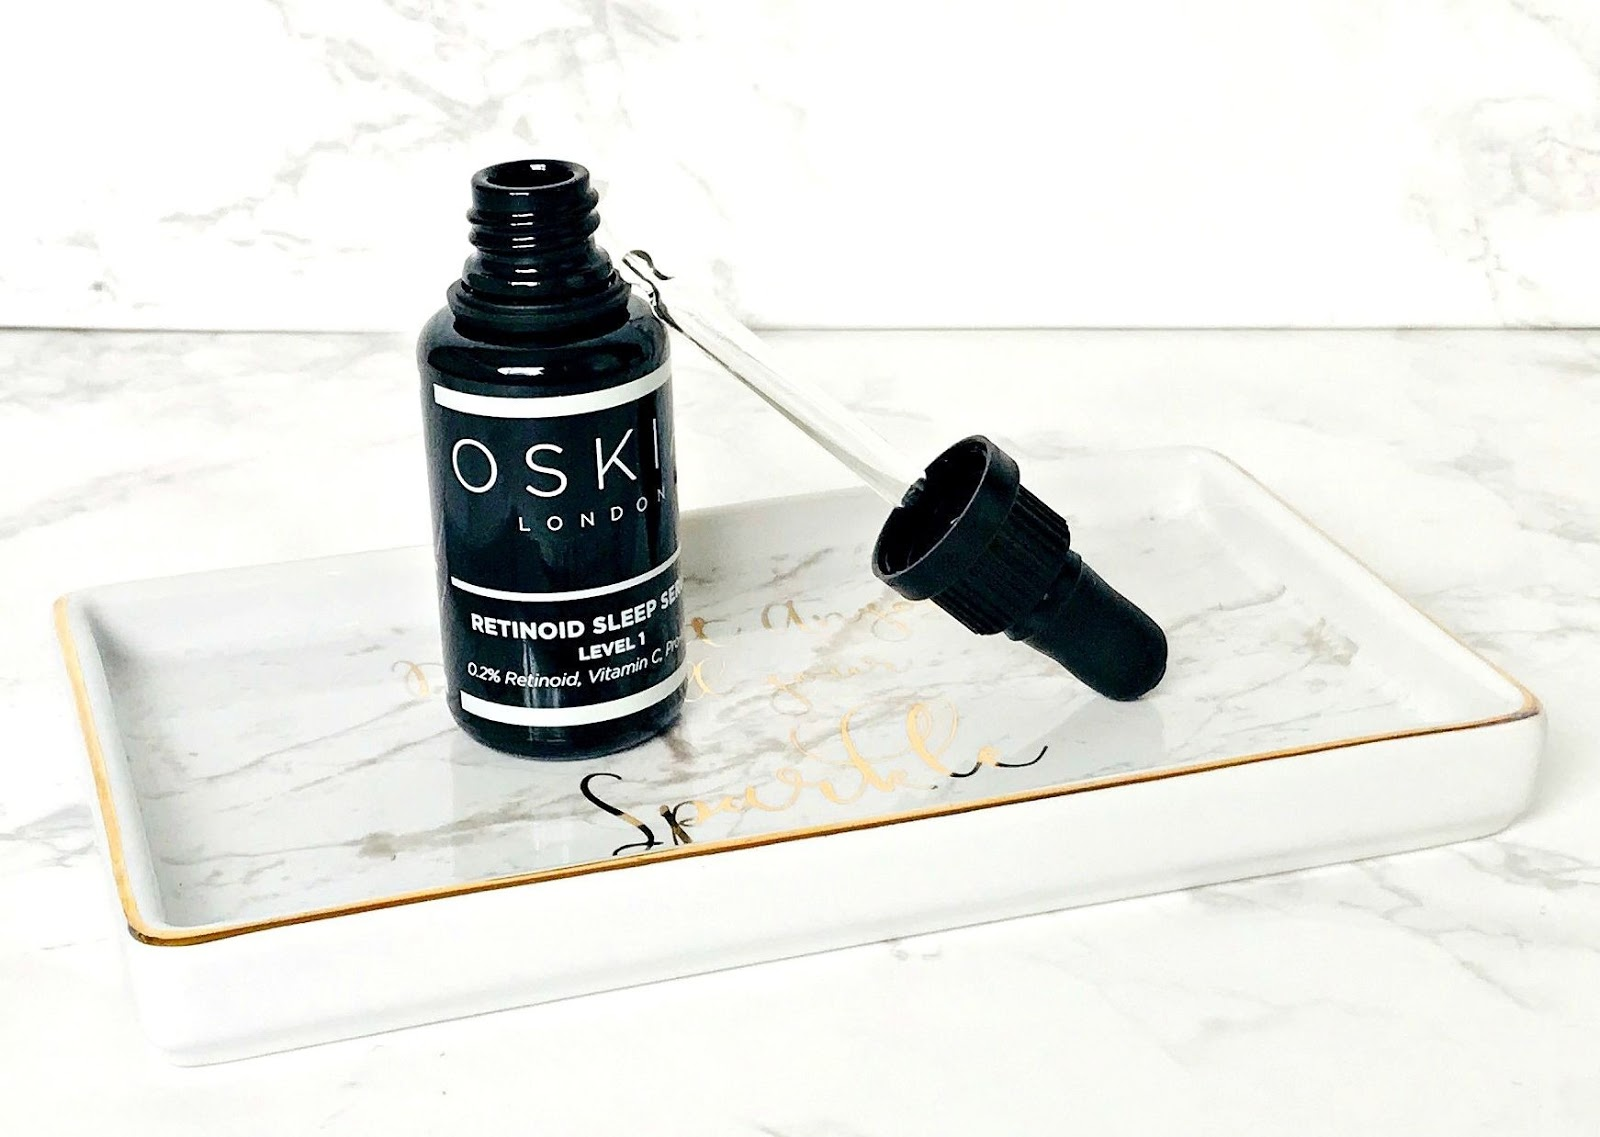 Oskia Retinoid Sleep Serum Level 1 Review